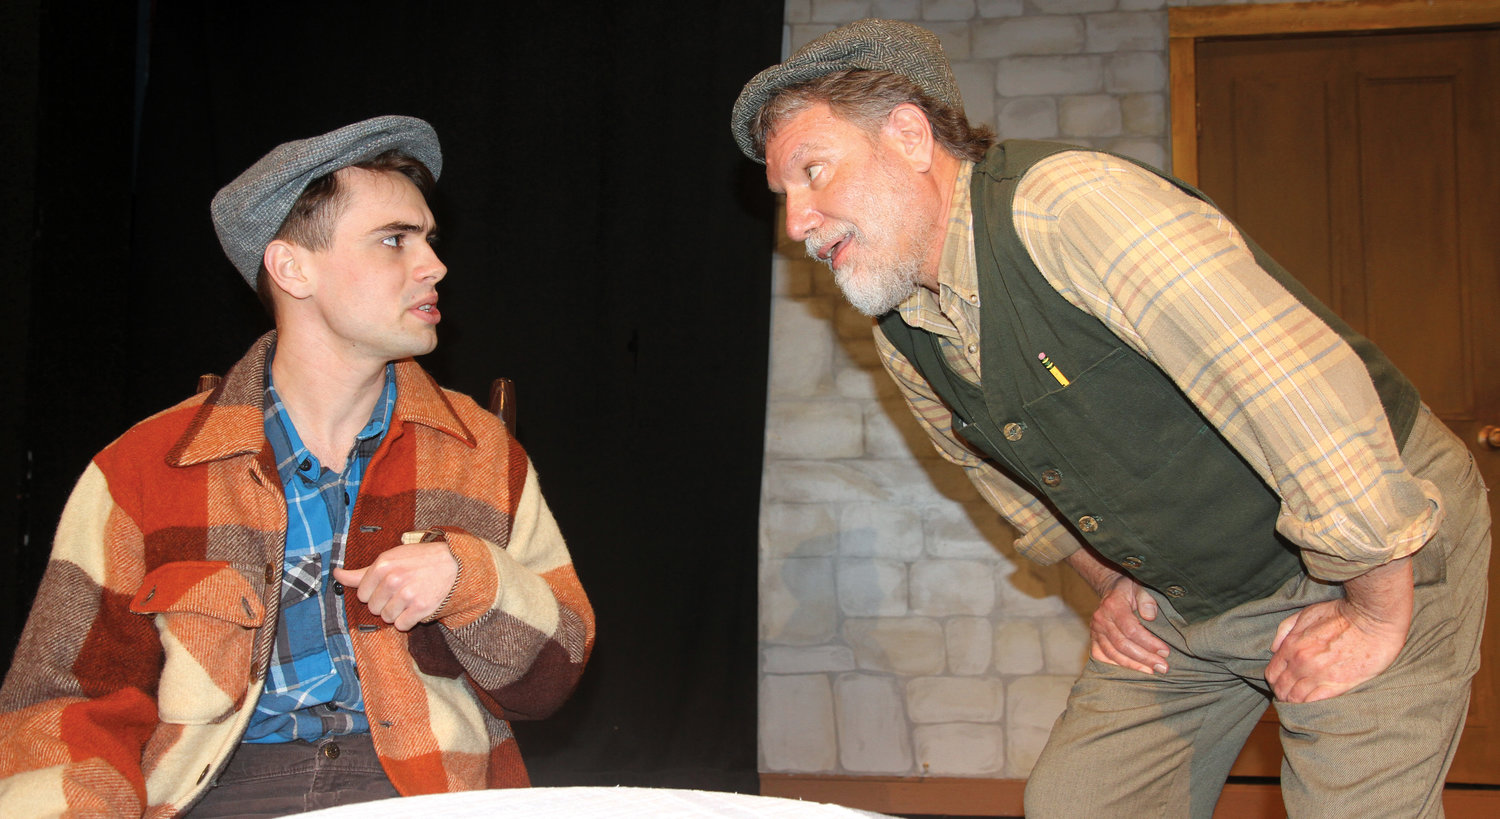 This will be the first time Tristan Riley, left, will be in a title role. He portrays Billy Claven. He is seen here with David Wayne Johnson, who portrays Johnnypateenmike.